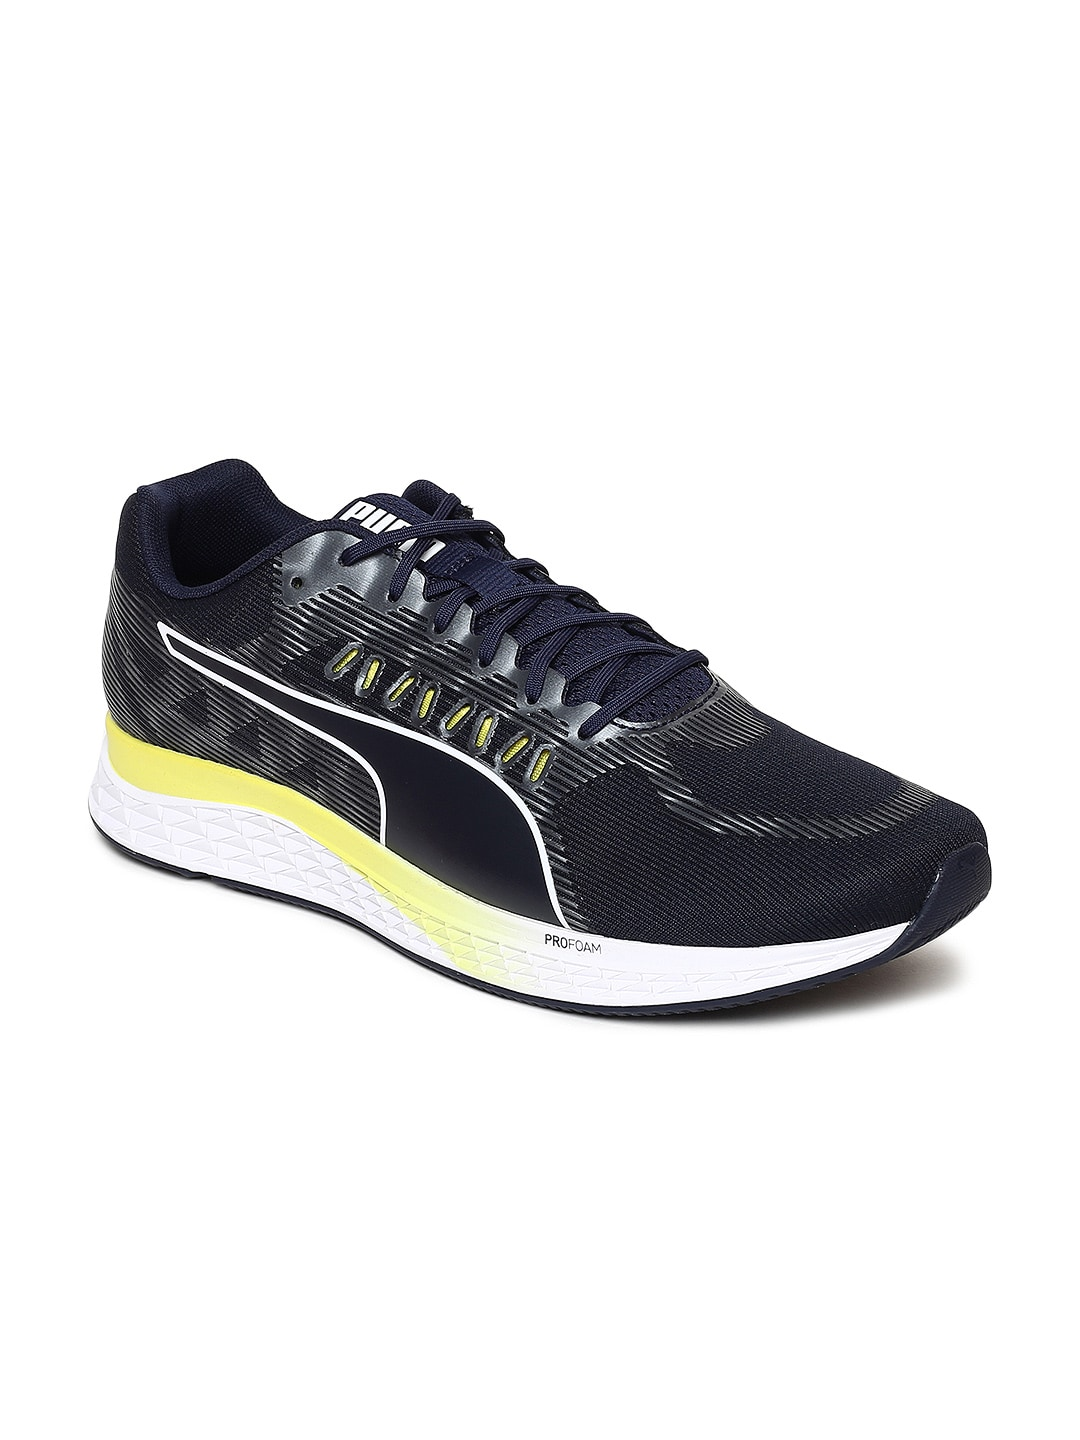 18ebd07bb83 Puma Running Shoes For Men - Buy Puma Running Shoes For Men online in India